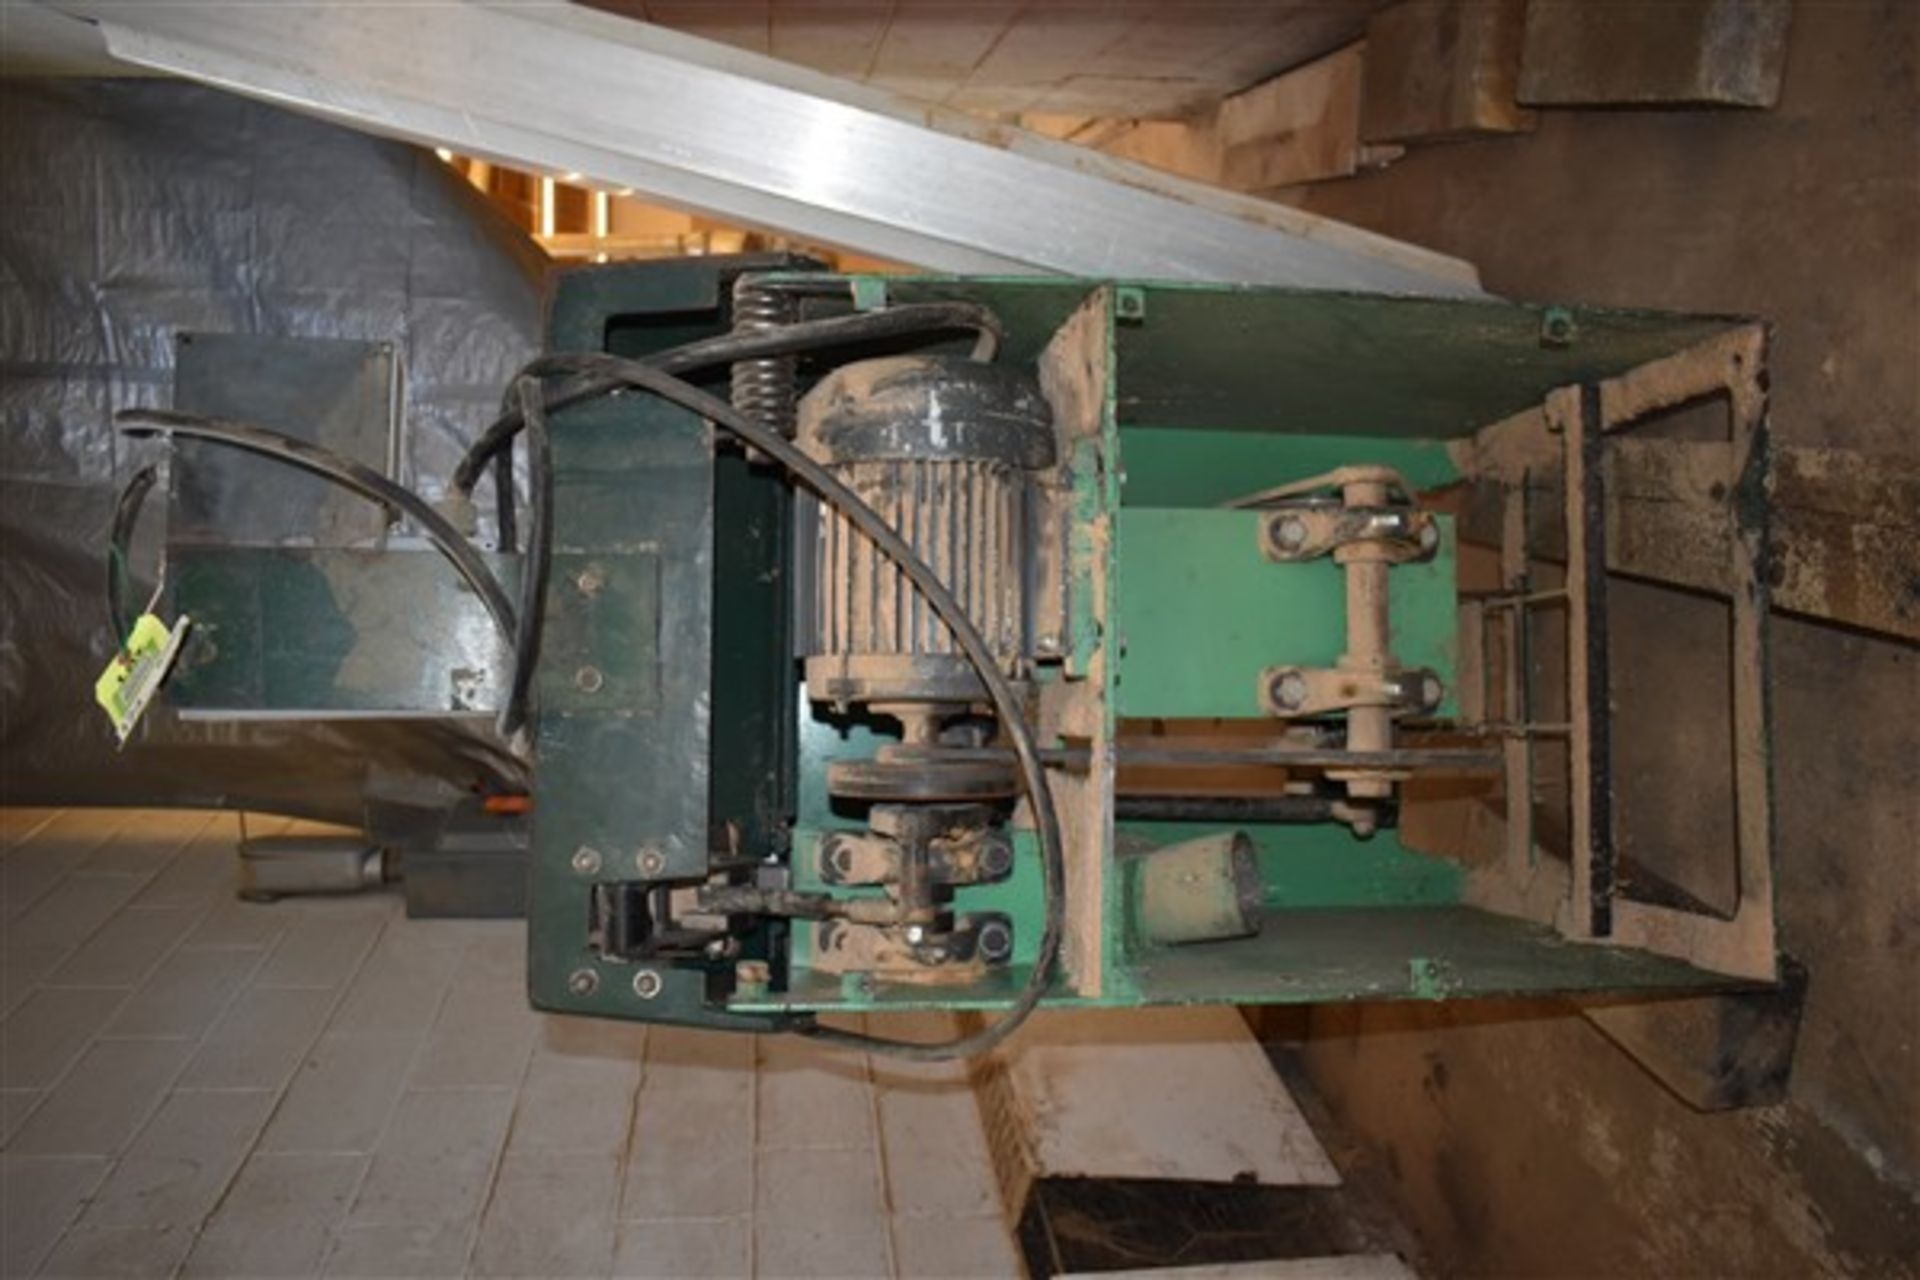 Lot 329 - Up-cut Saw, Right Hand, Precision M-14